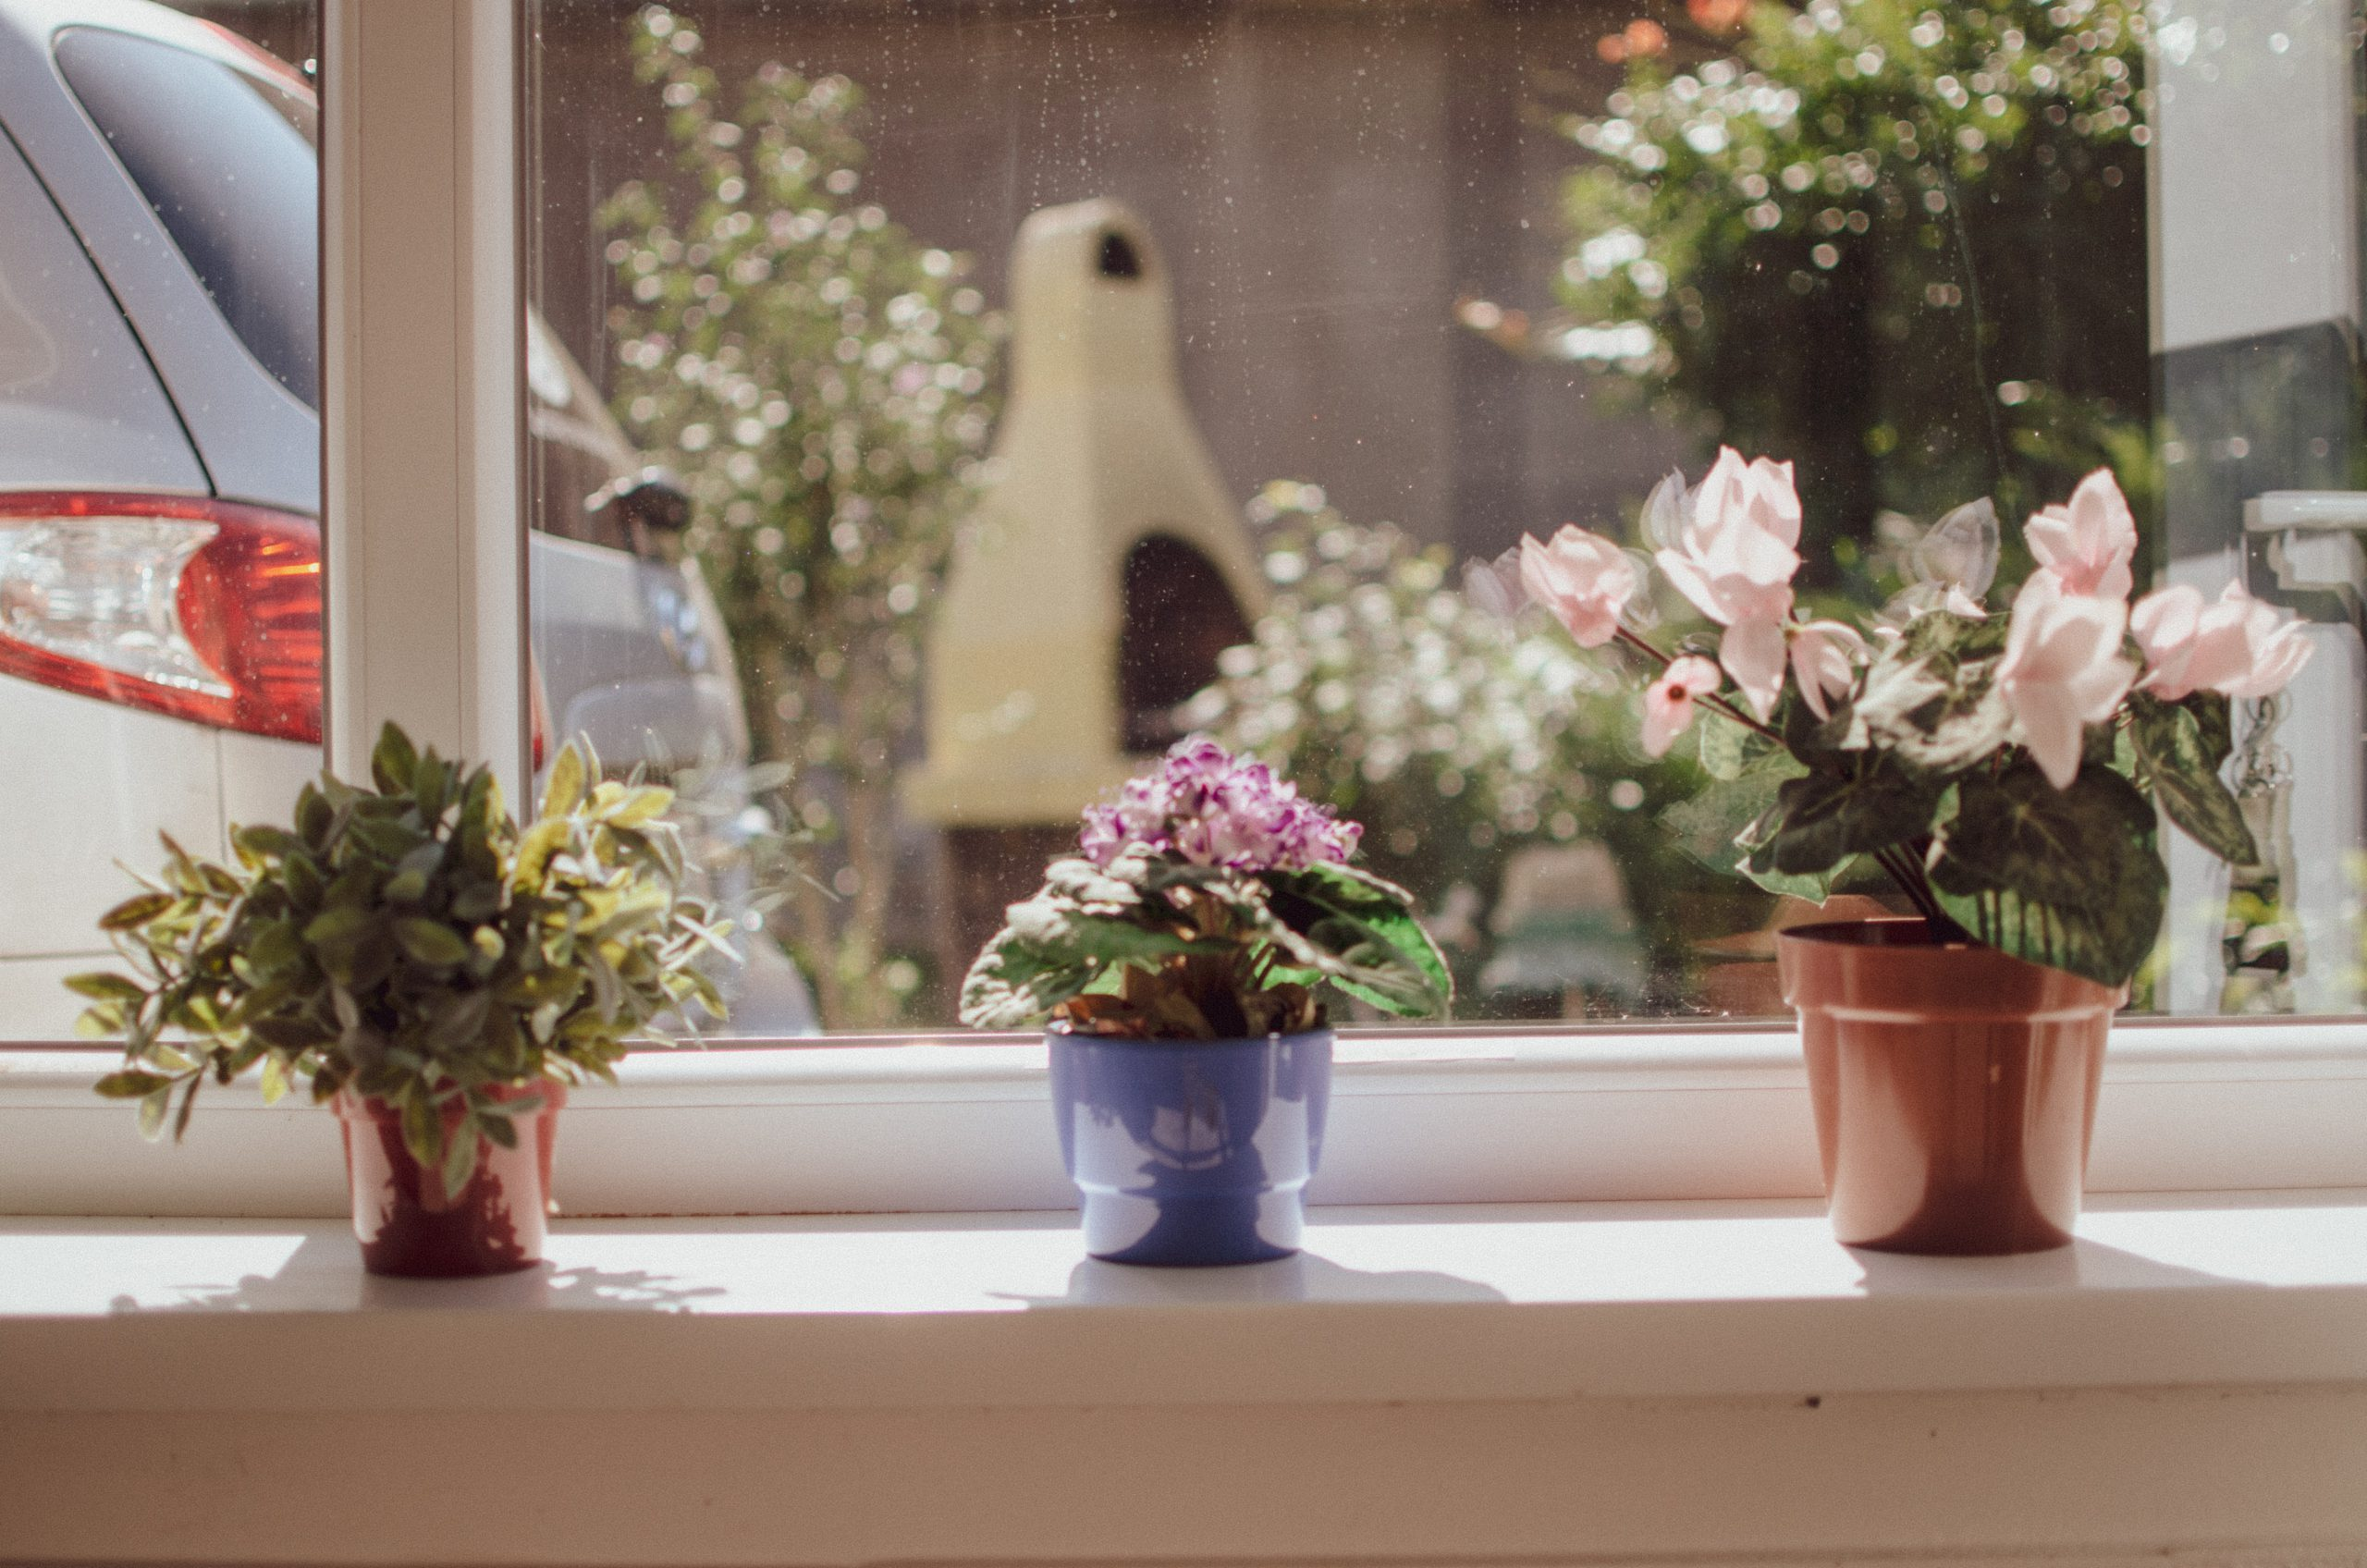 succulents and house plants in window sill